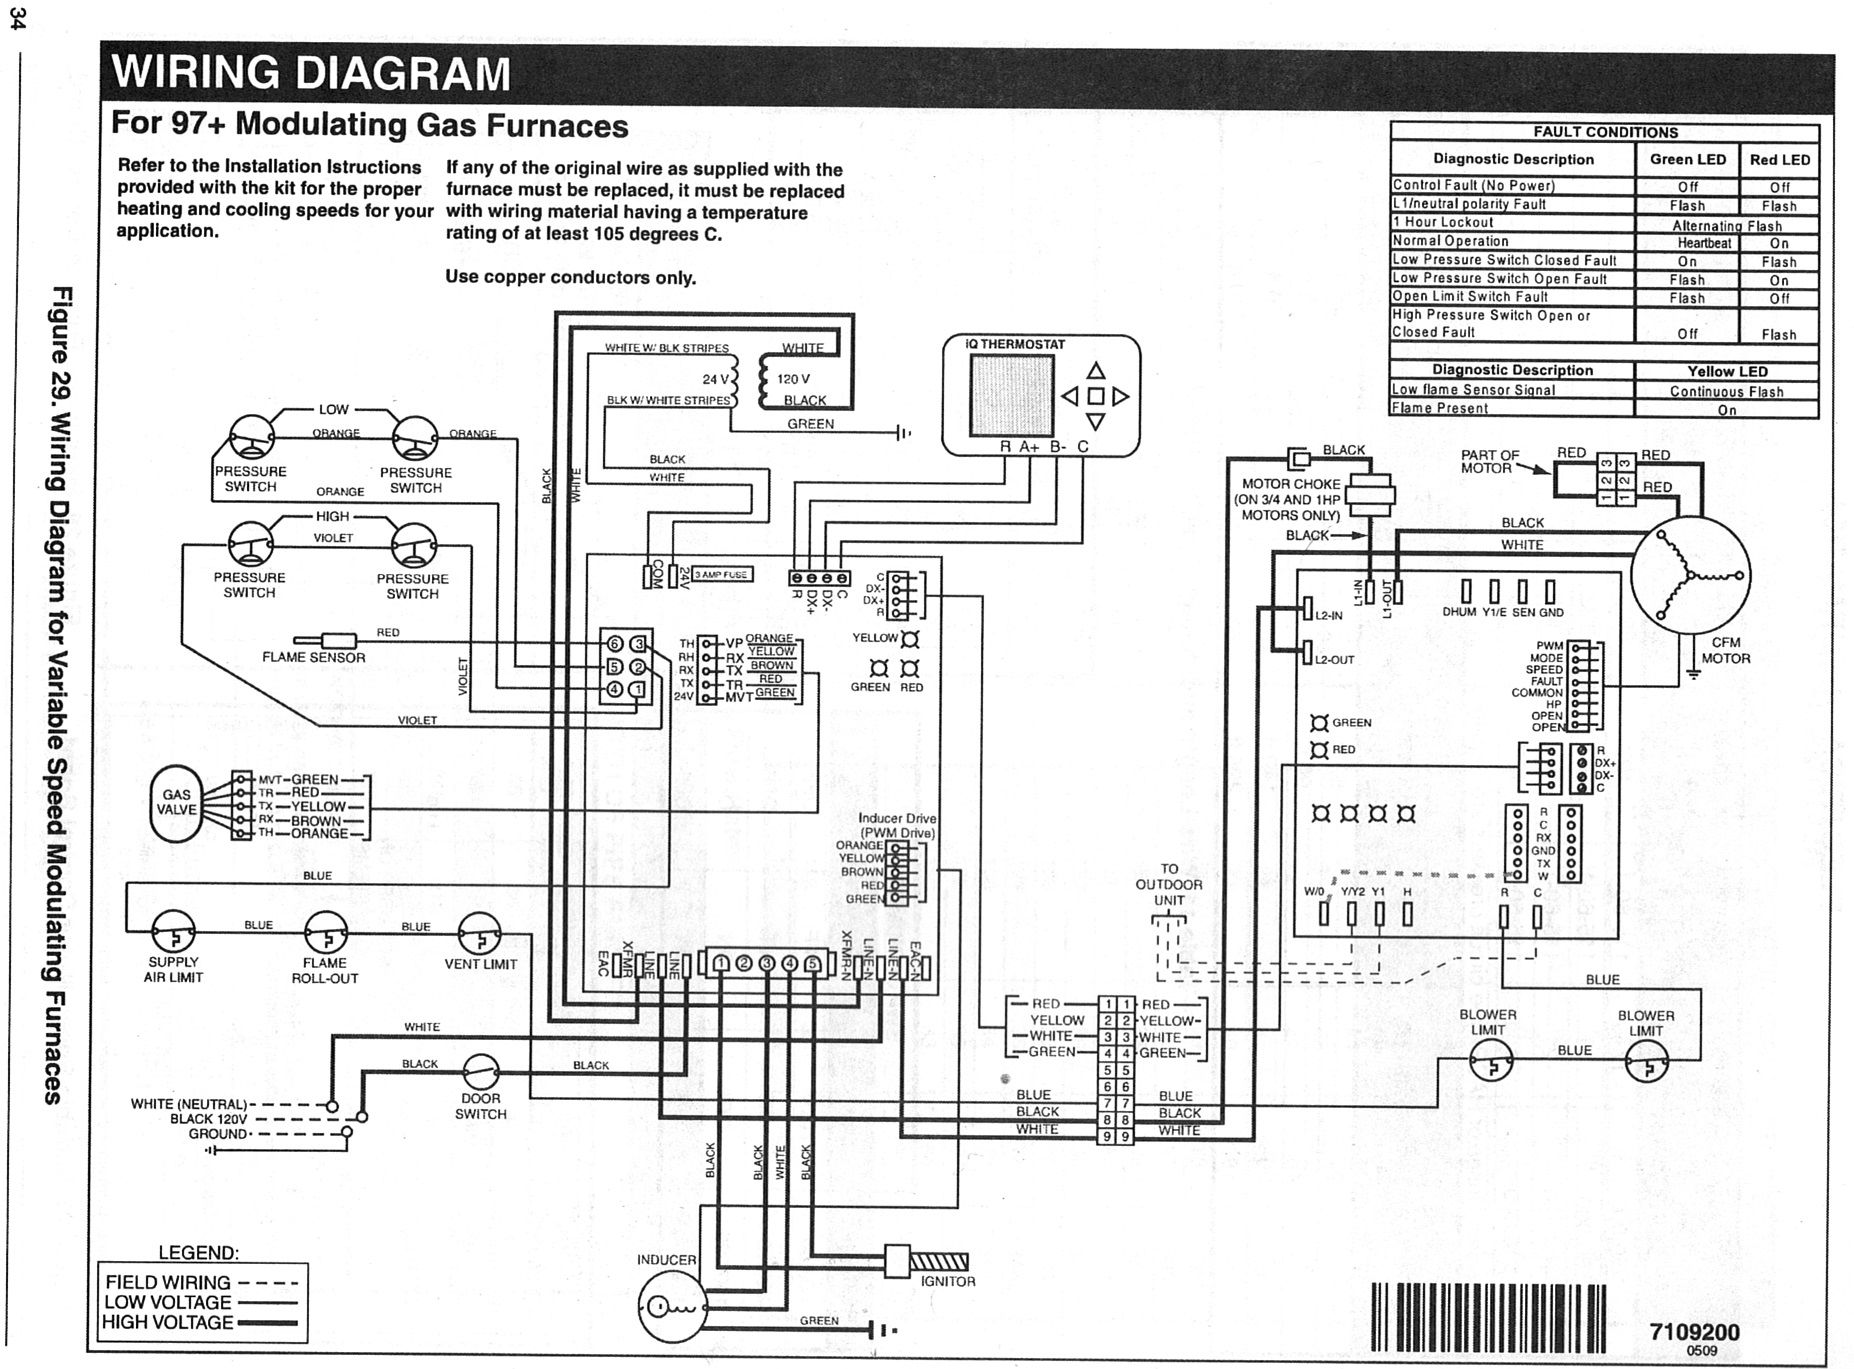 Wiring Diagram Maytag Furnace Gas Furnace Furnace Diagram